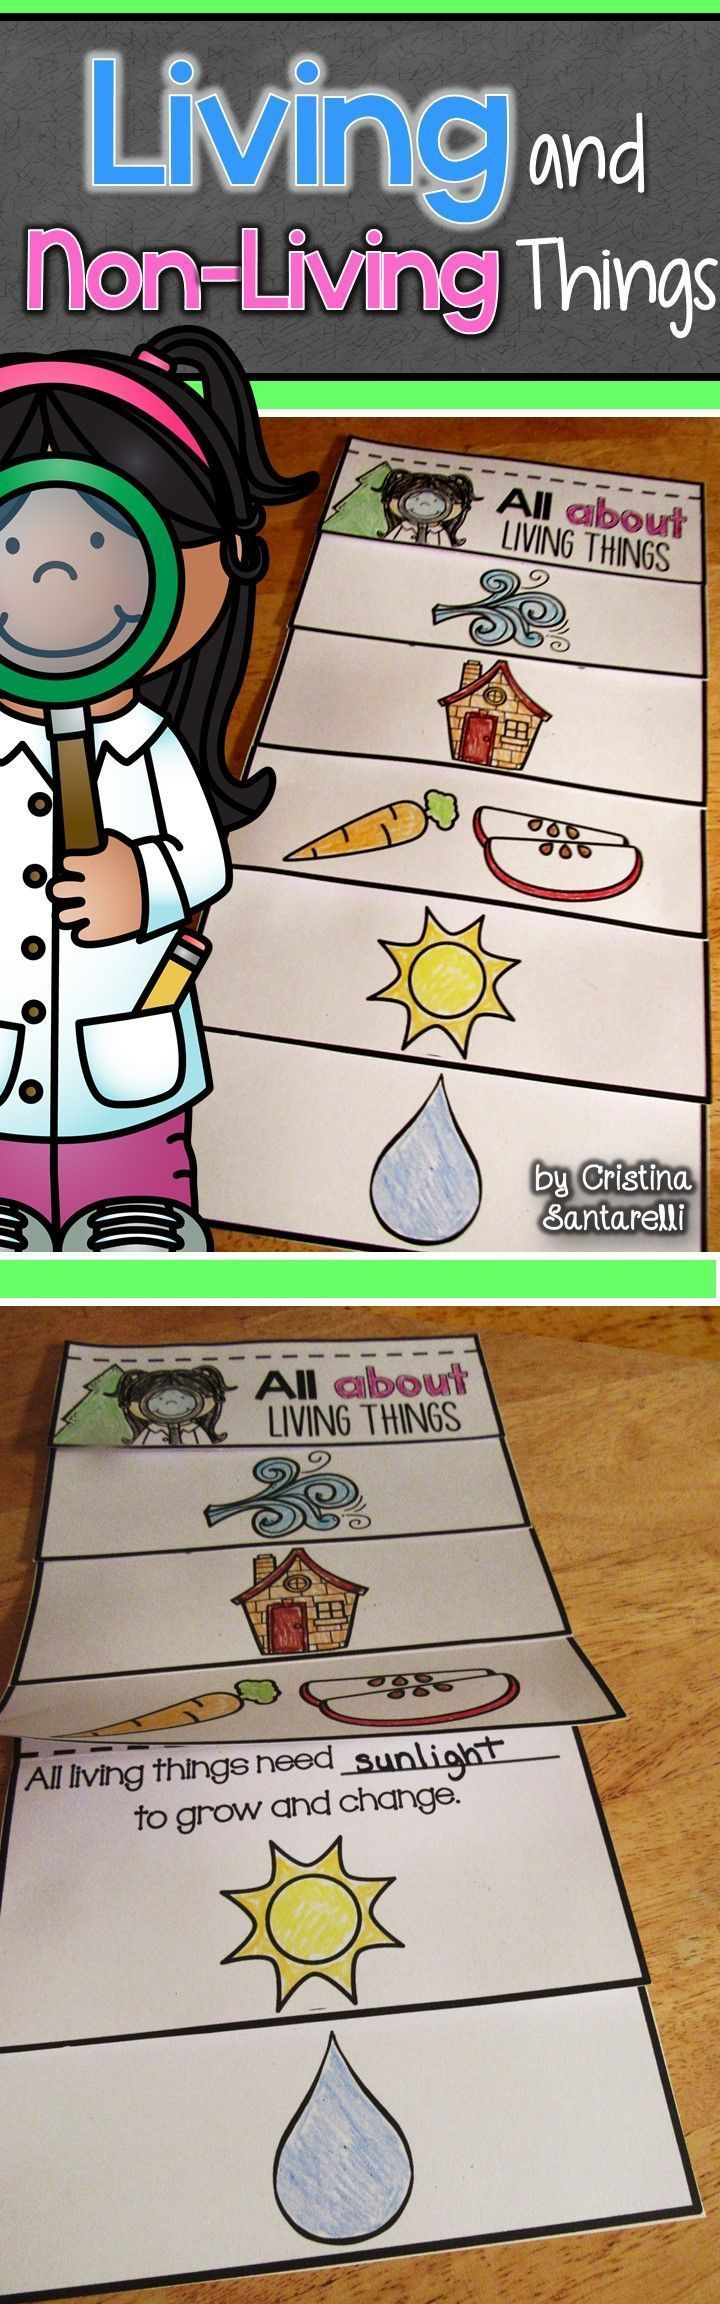 Grade One Standard: SC.1.L.14.3 Differentiate between living and nonliving things. This gives students a fun visual chart to help compare living and non-living things.